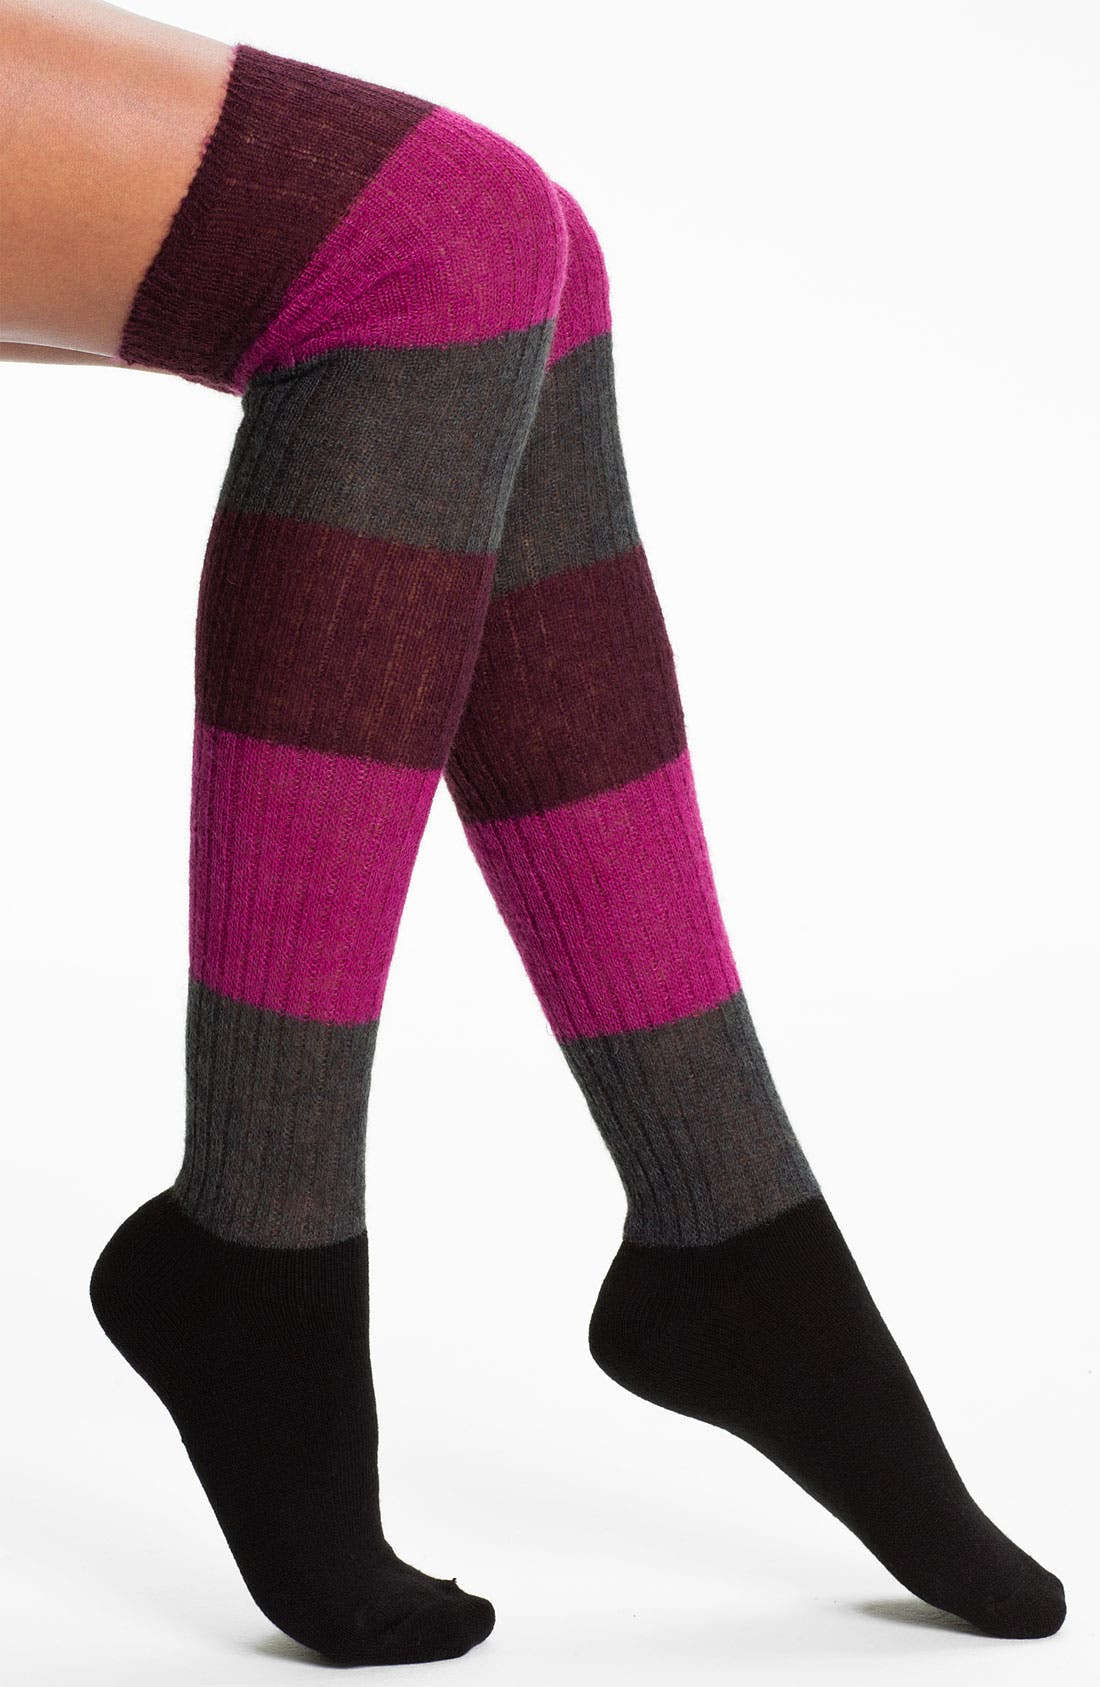 Alternate Image 1 Selected - Hue Colorblock Over the Knee Socks